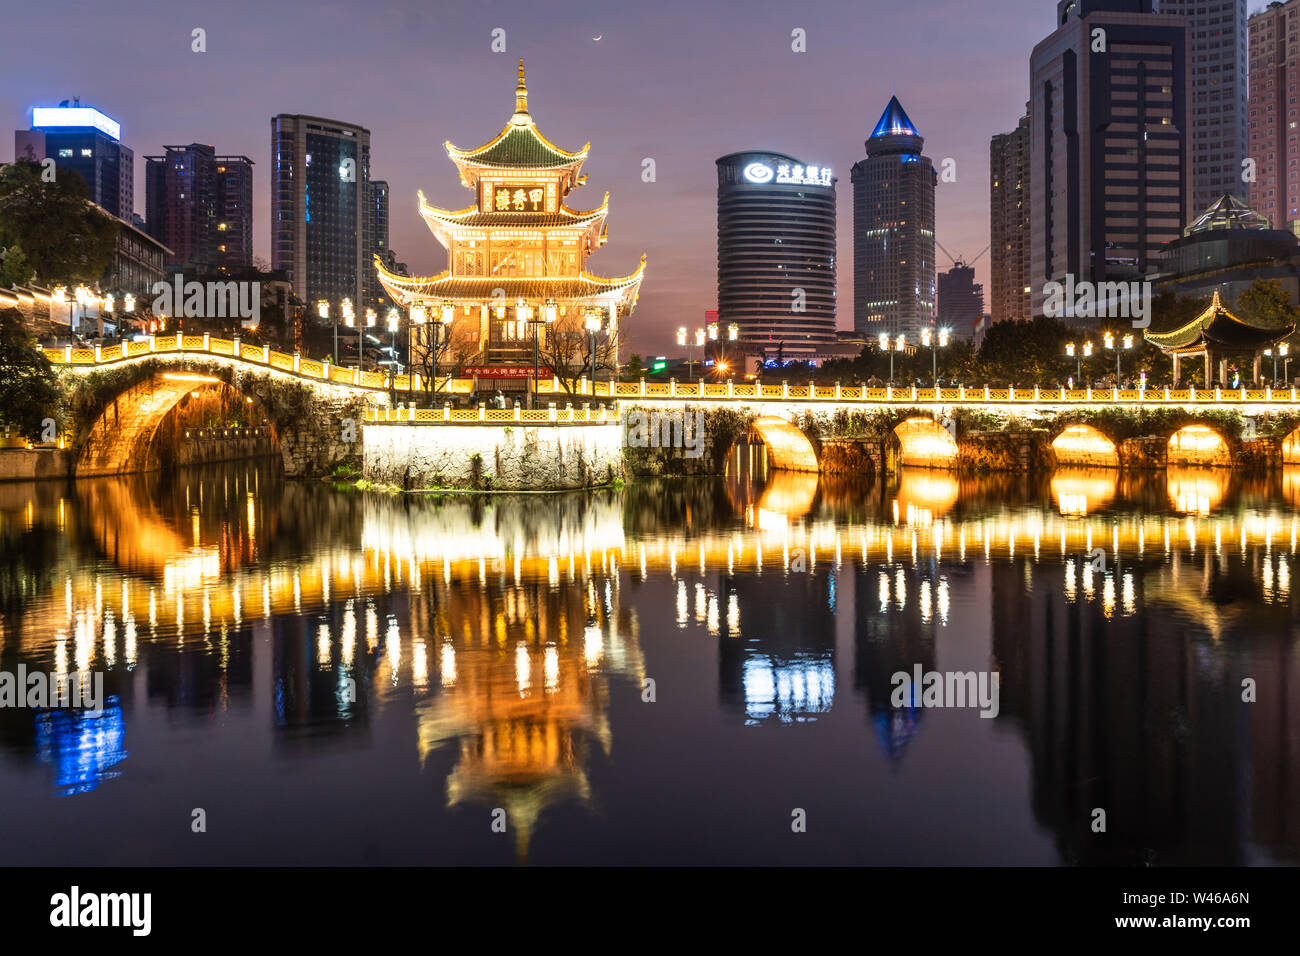 Guiyang, China - February 9 2019: Twilight over the famous Jiaxu tower in the heart of Guiyang downtown district in Guizhou province in China. Stock Photo